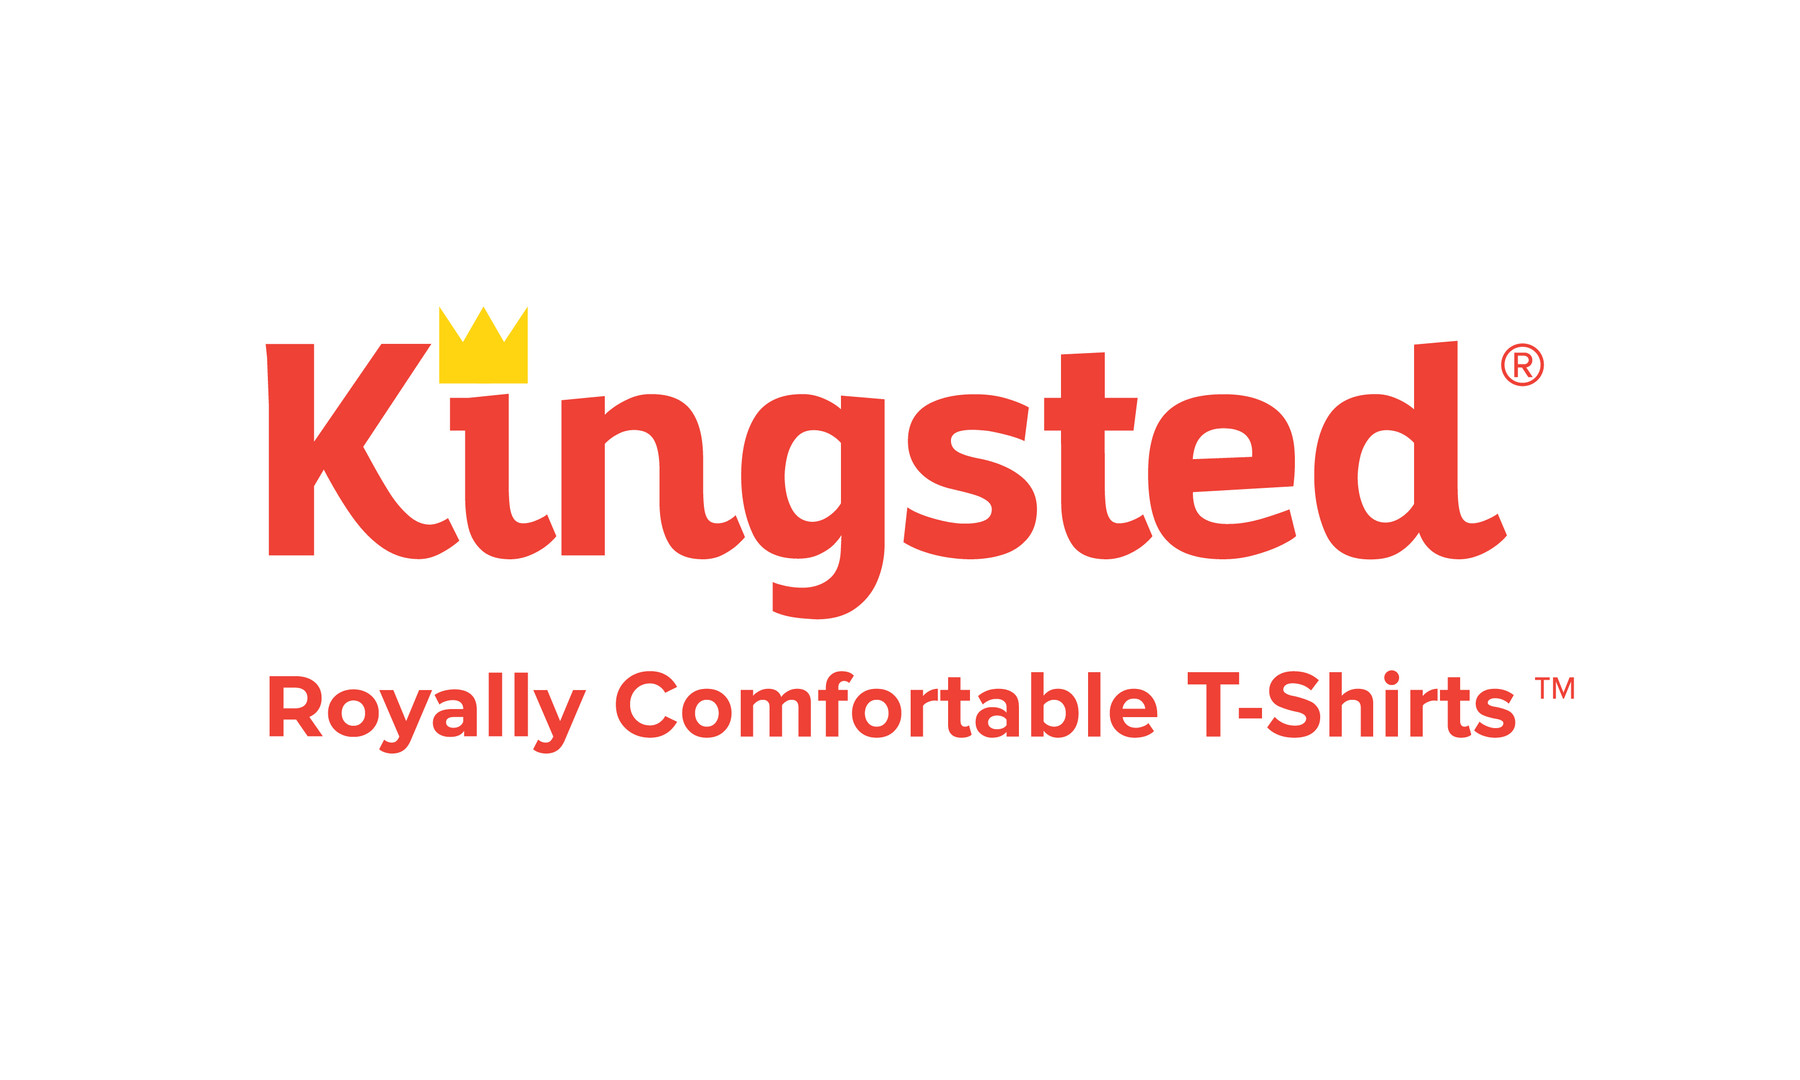 0905_Kingsted_Logo_out-01.jpg